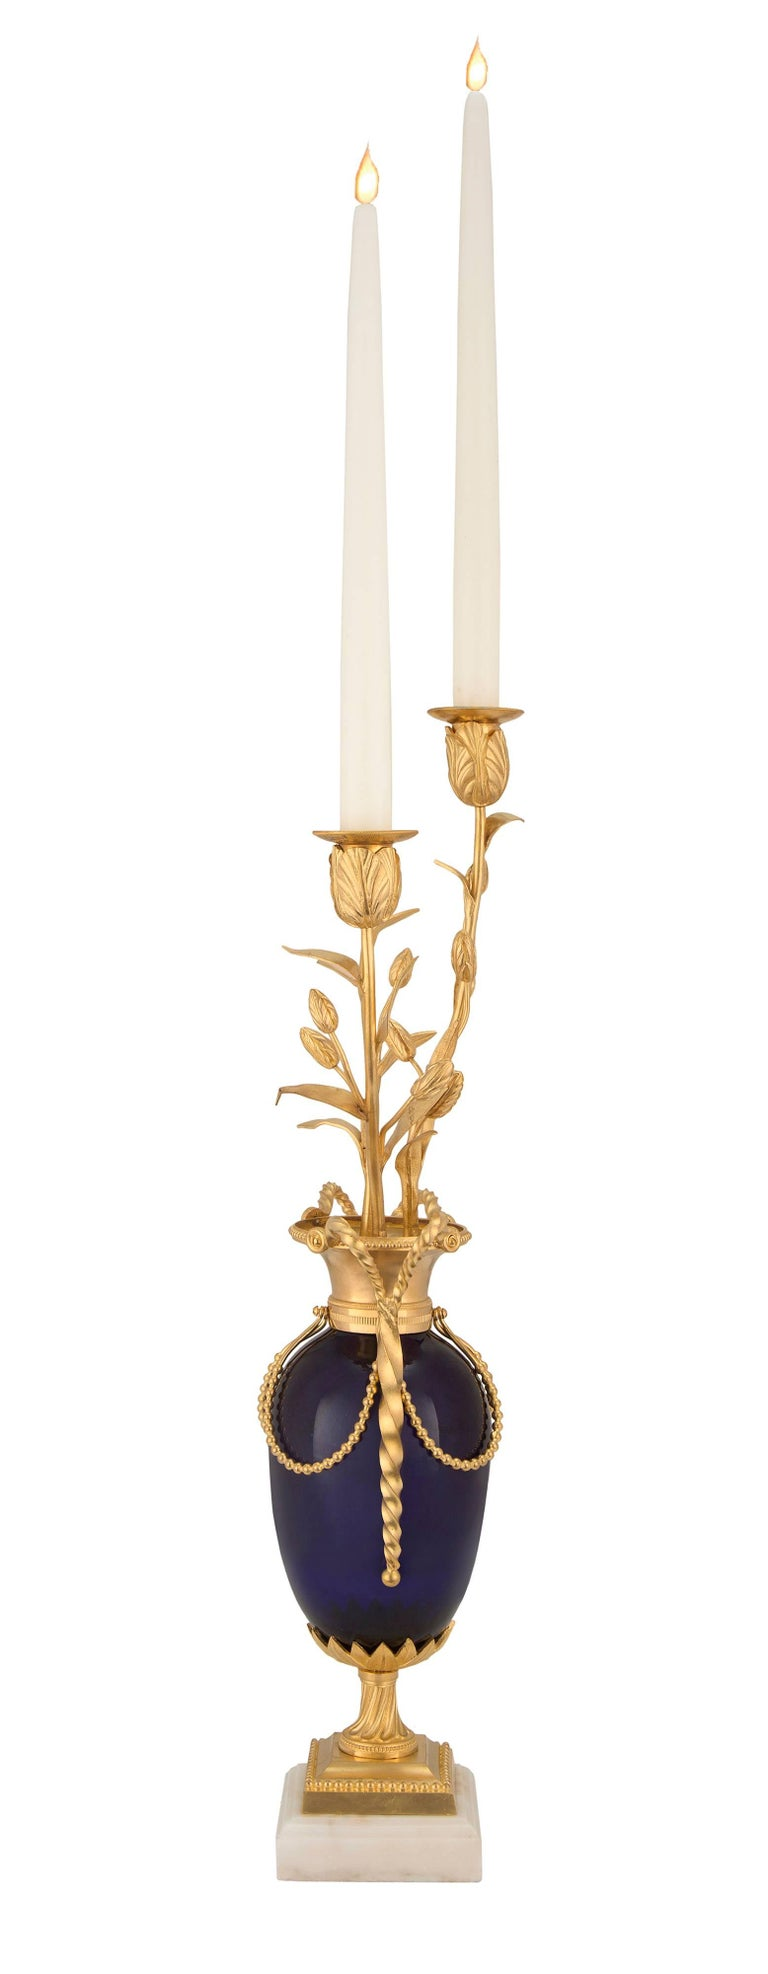 French Mid-19th Century Louis XVI Style Cobalt Blue Glass and Ormolu Candelabra For Sale 1